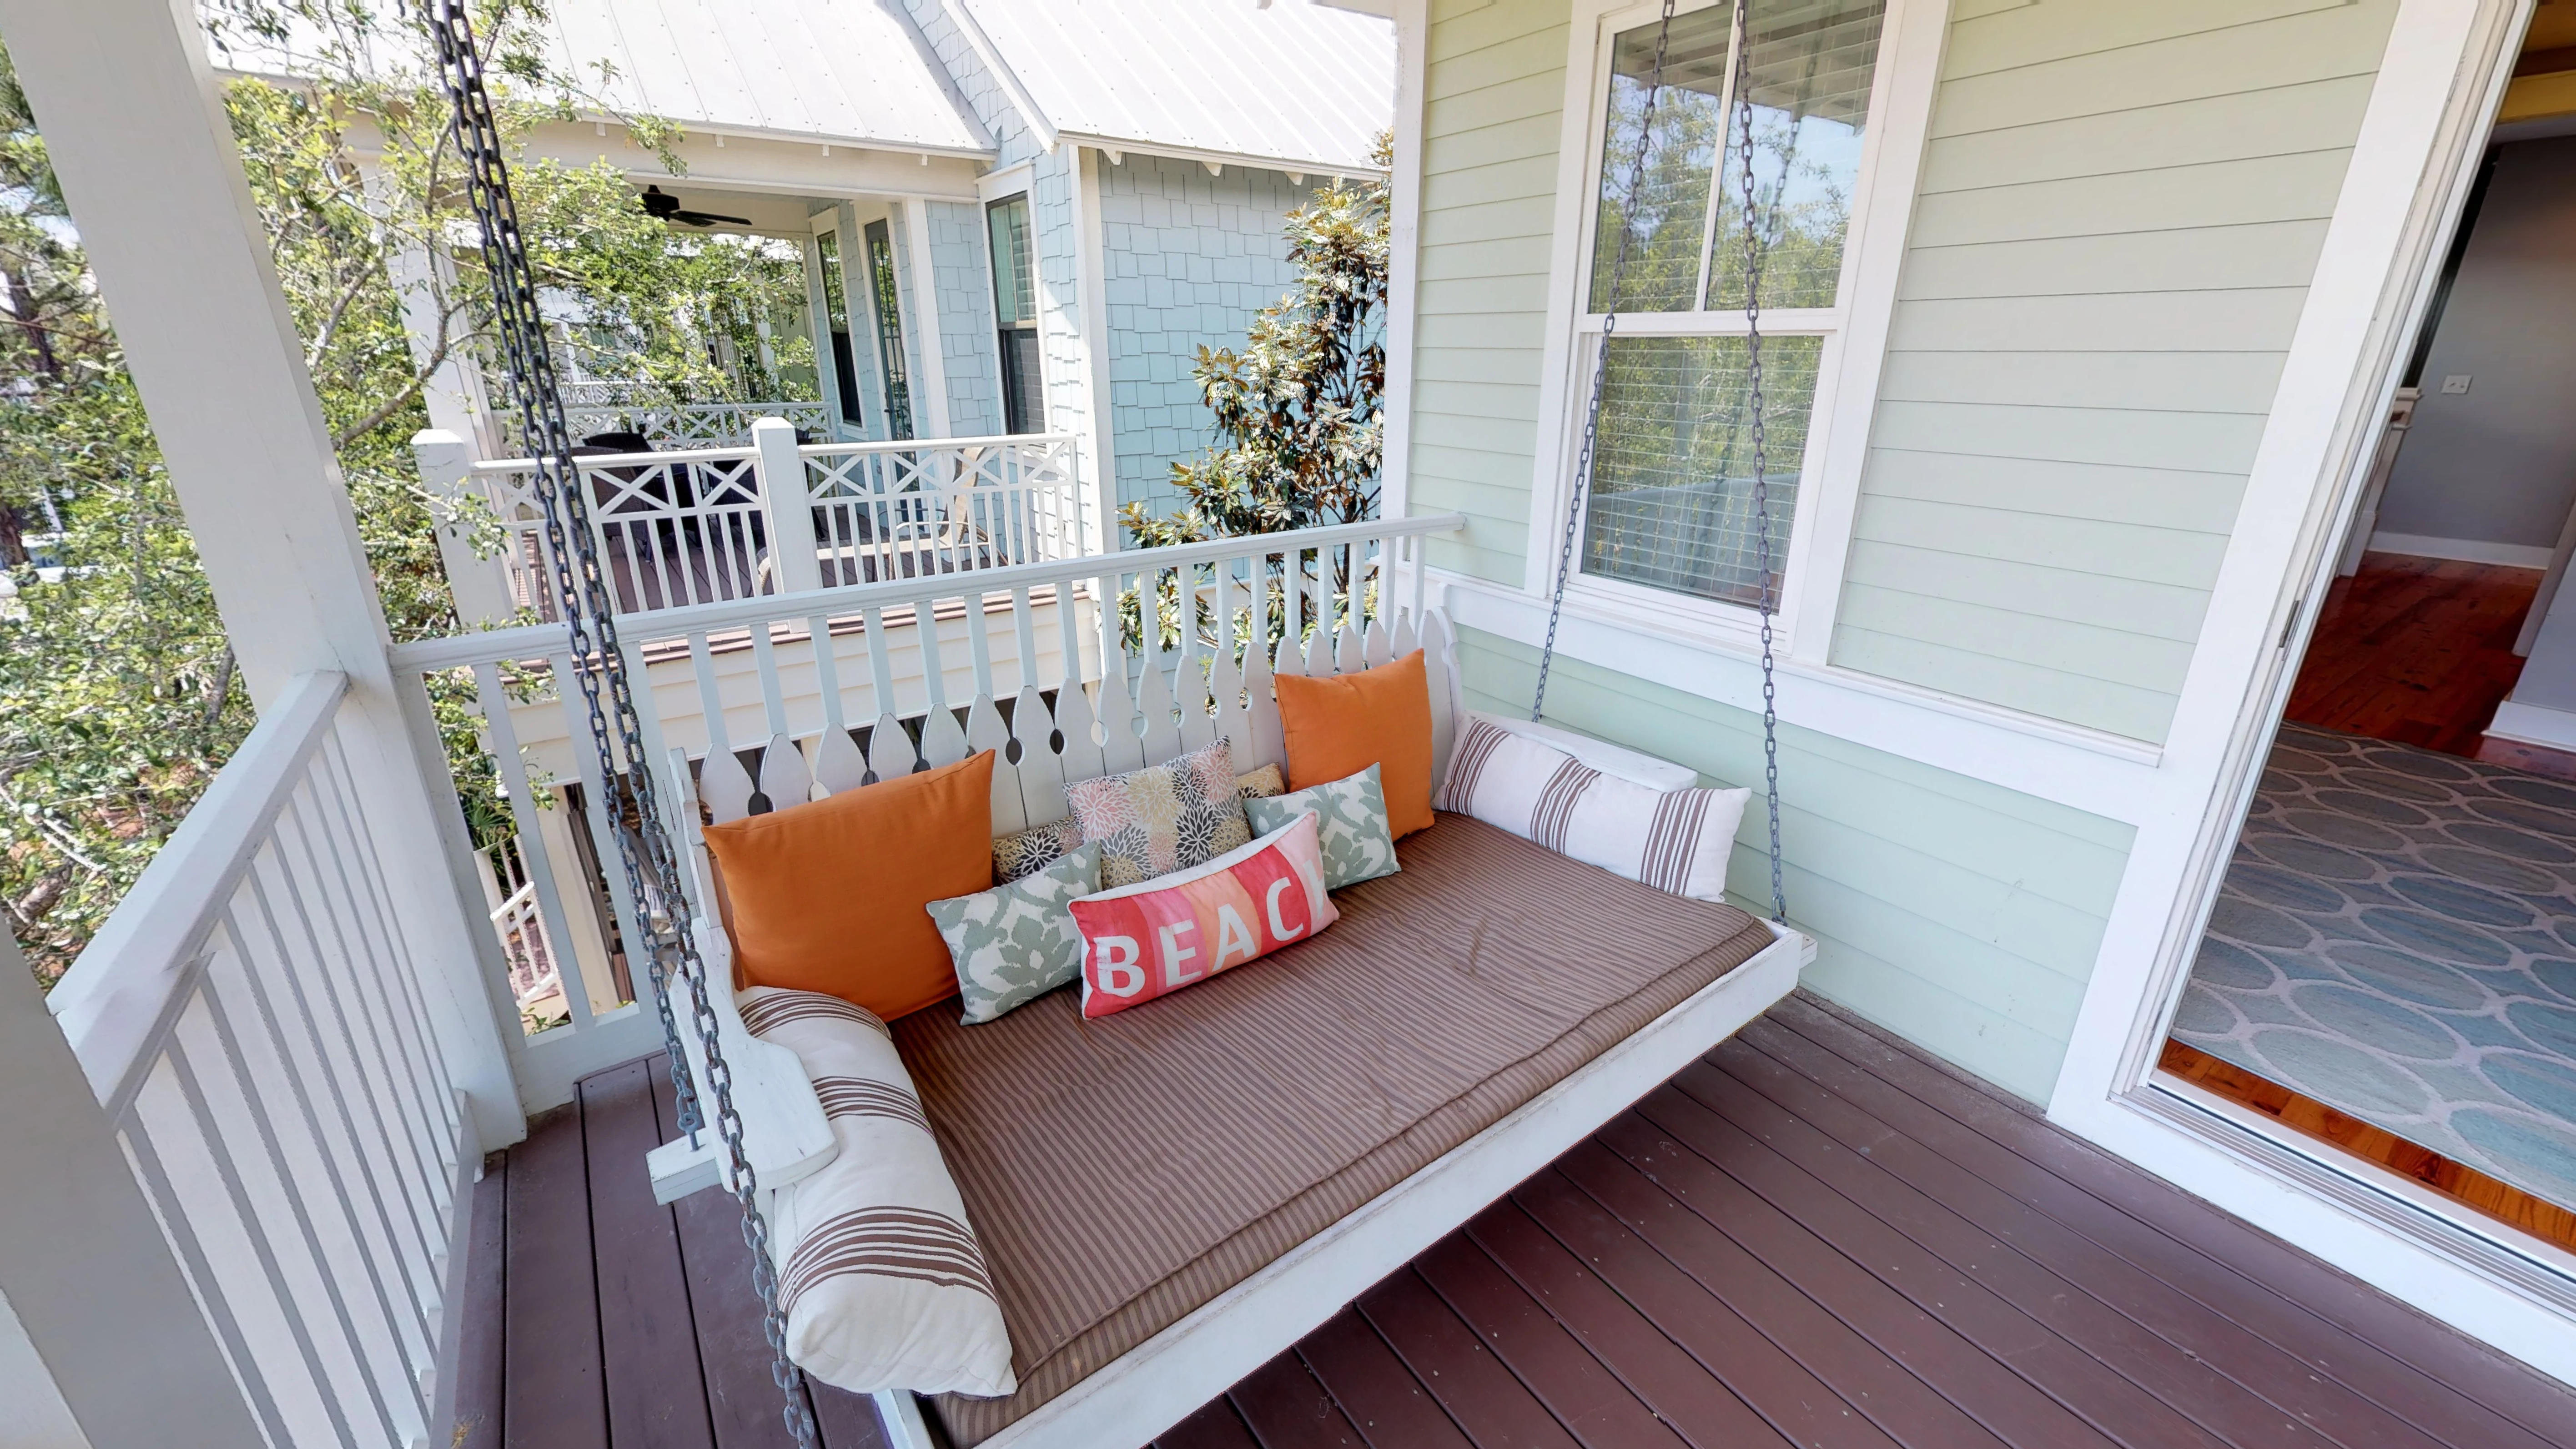 The favorite spot in the home the second story porch swing